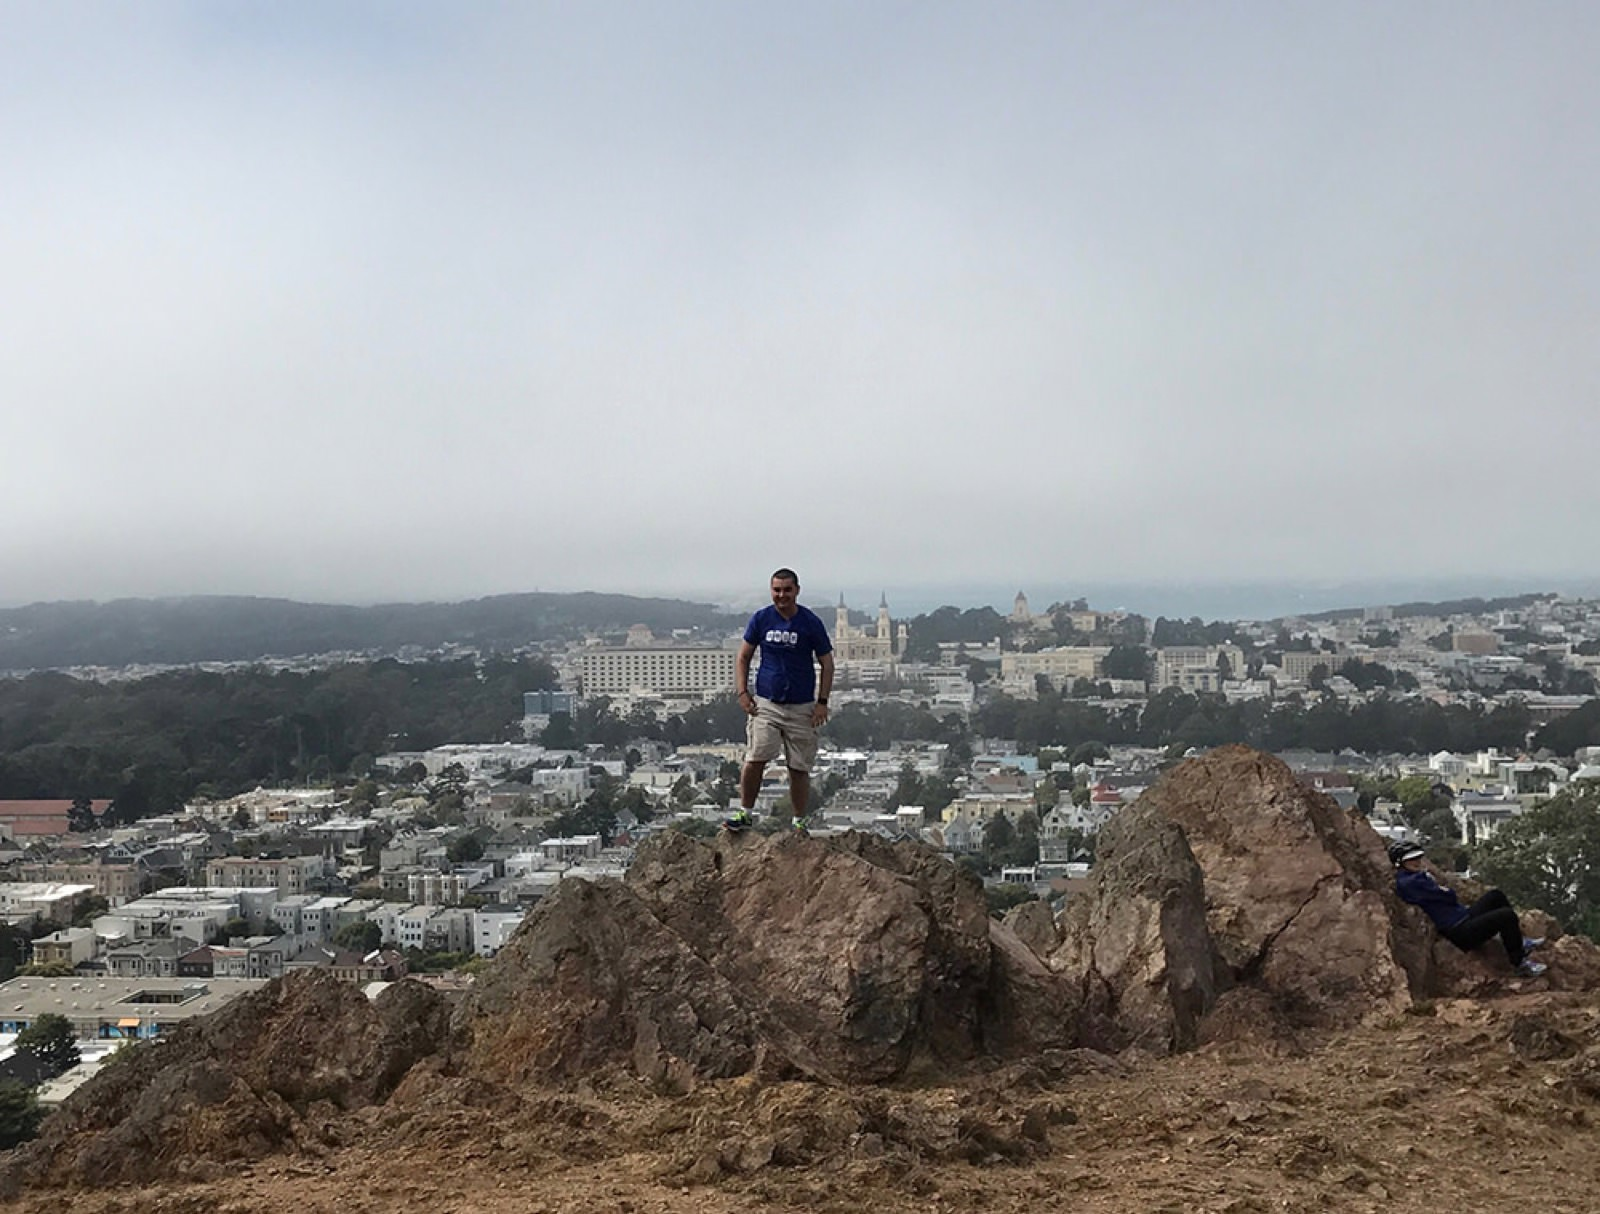 Conquering SF one mountain at a time